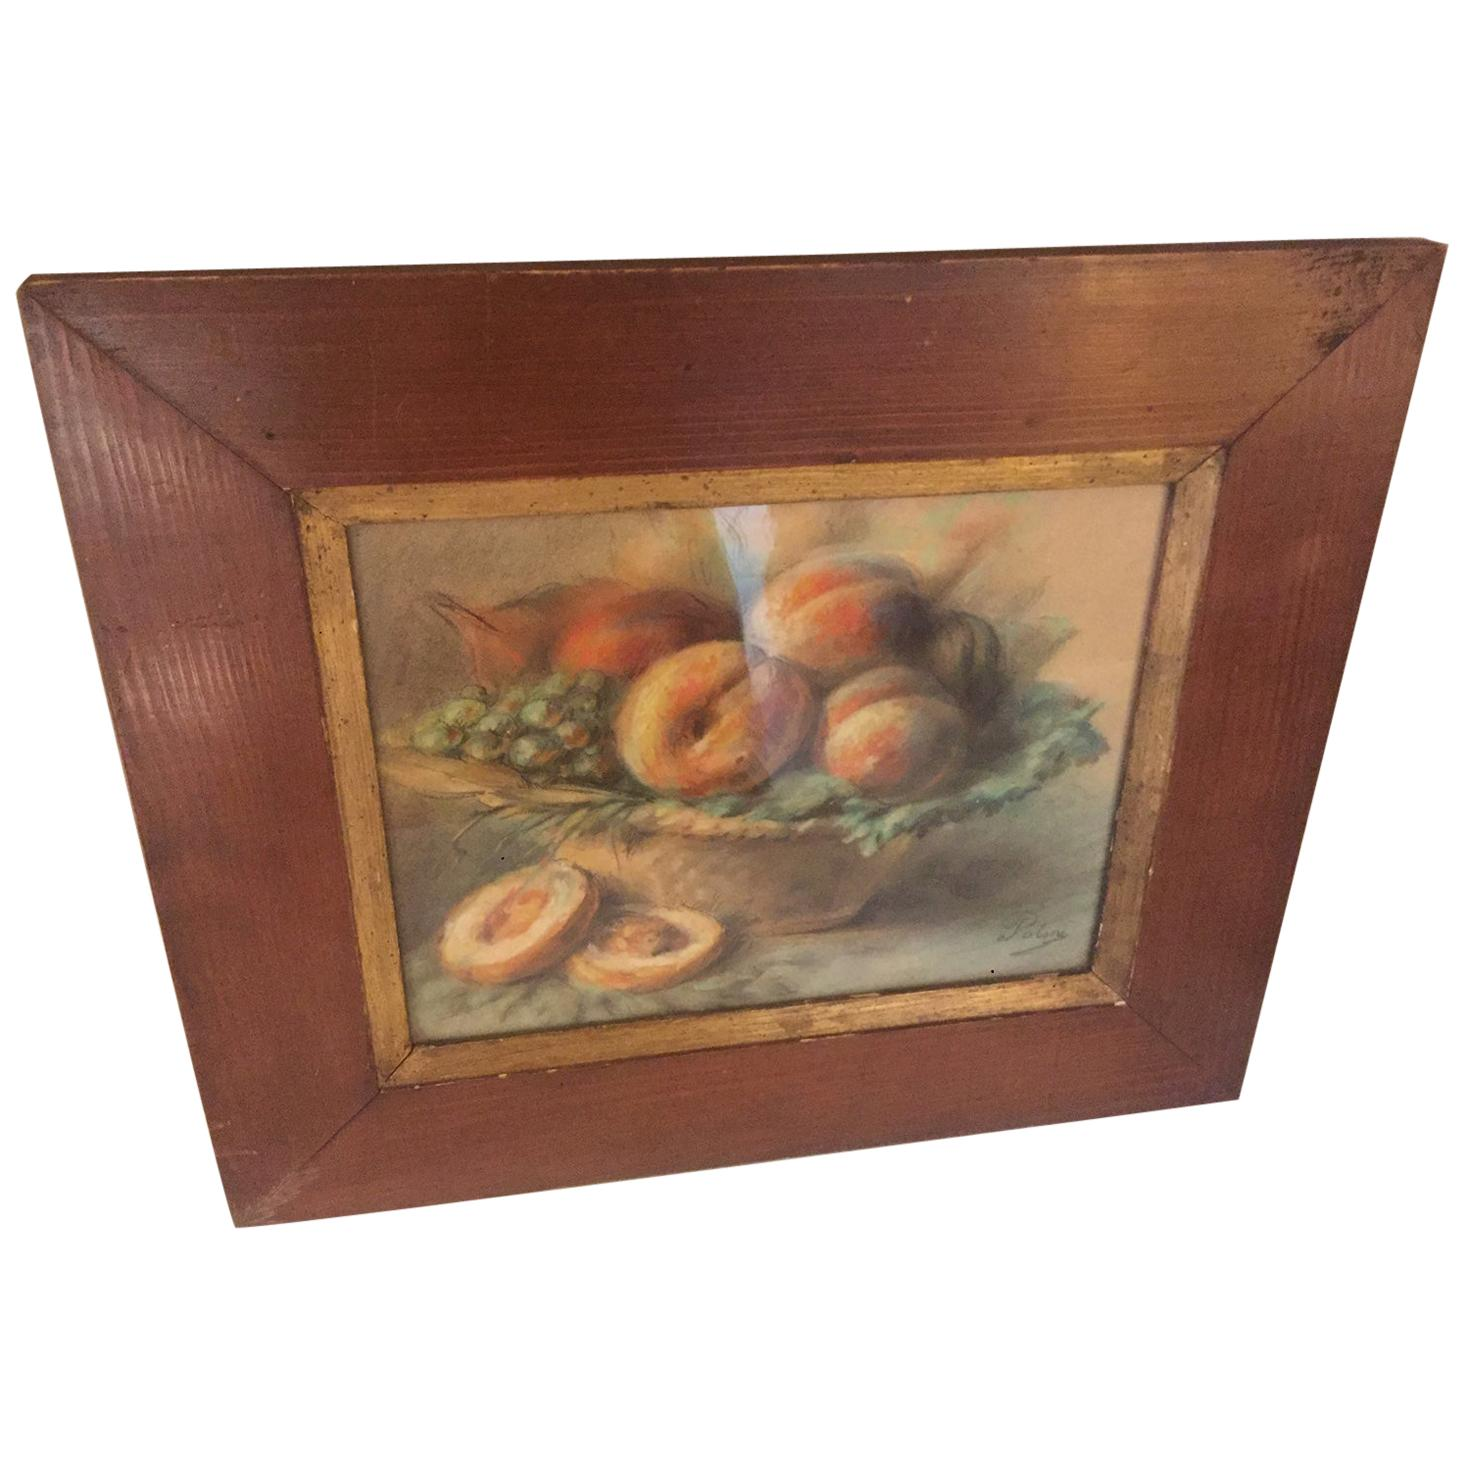 20th Century French Pastel Drawing Signed Polme, 1920s